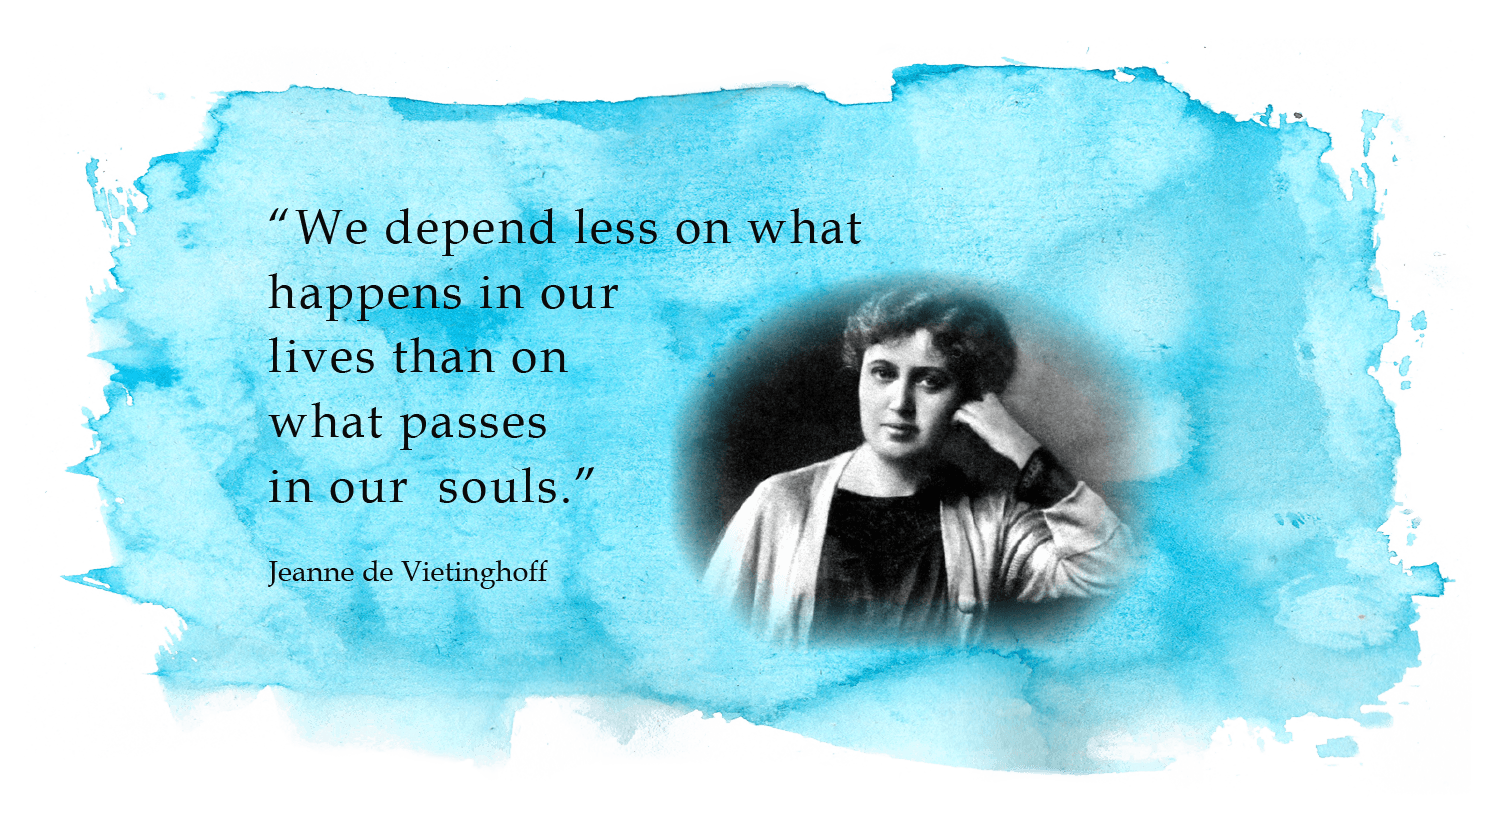 We depend less on what happens in our lives than what passes in our souls. quote by Jeanne de Vietinghoff